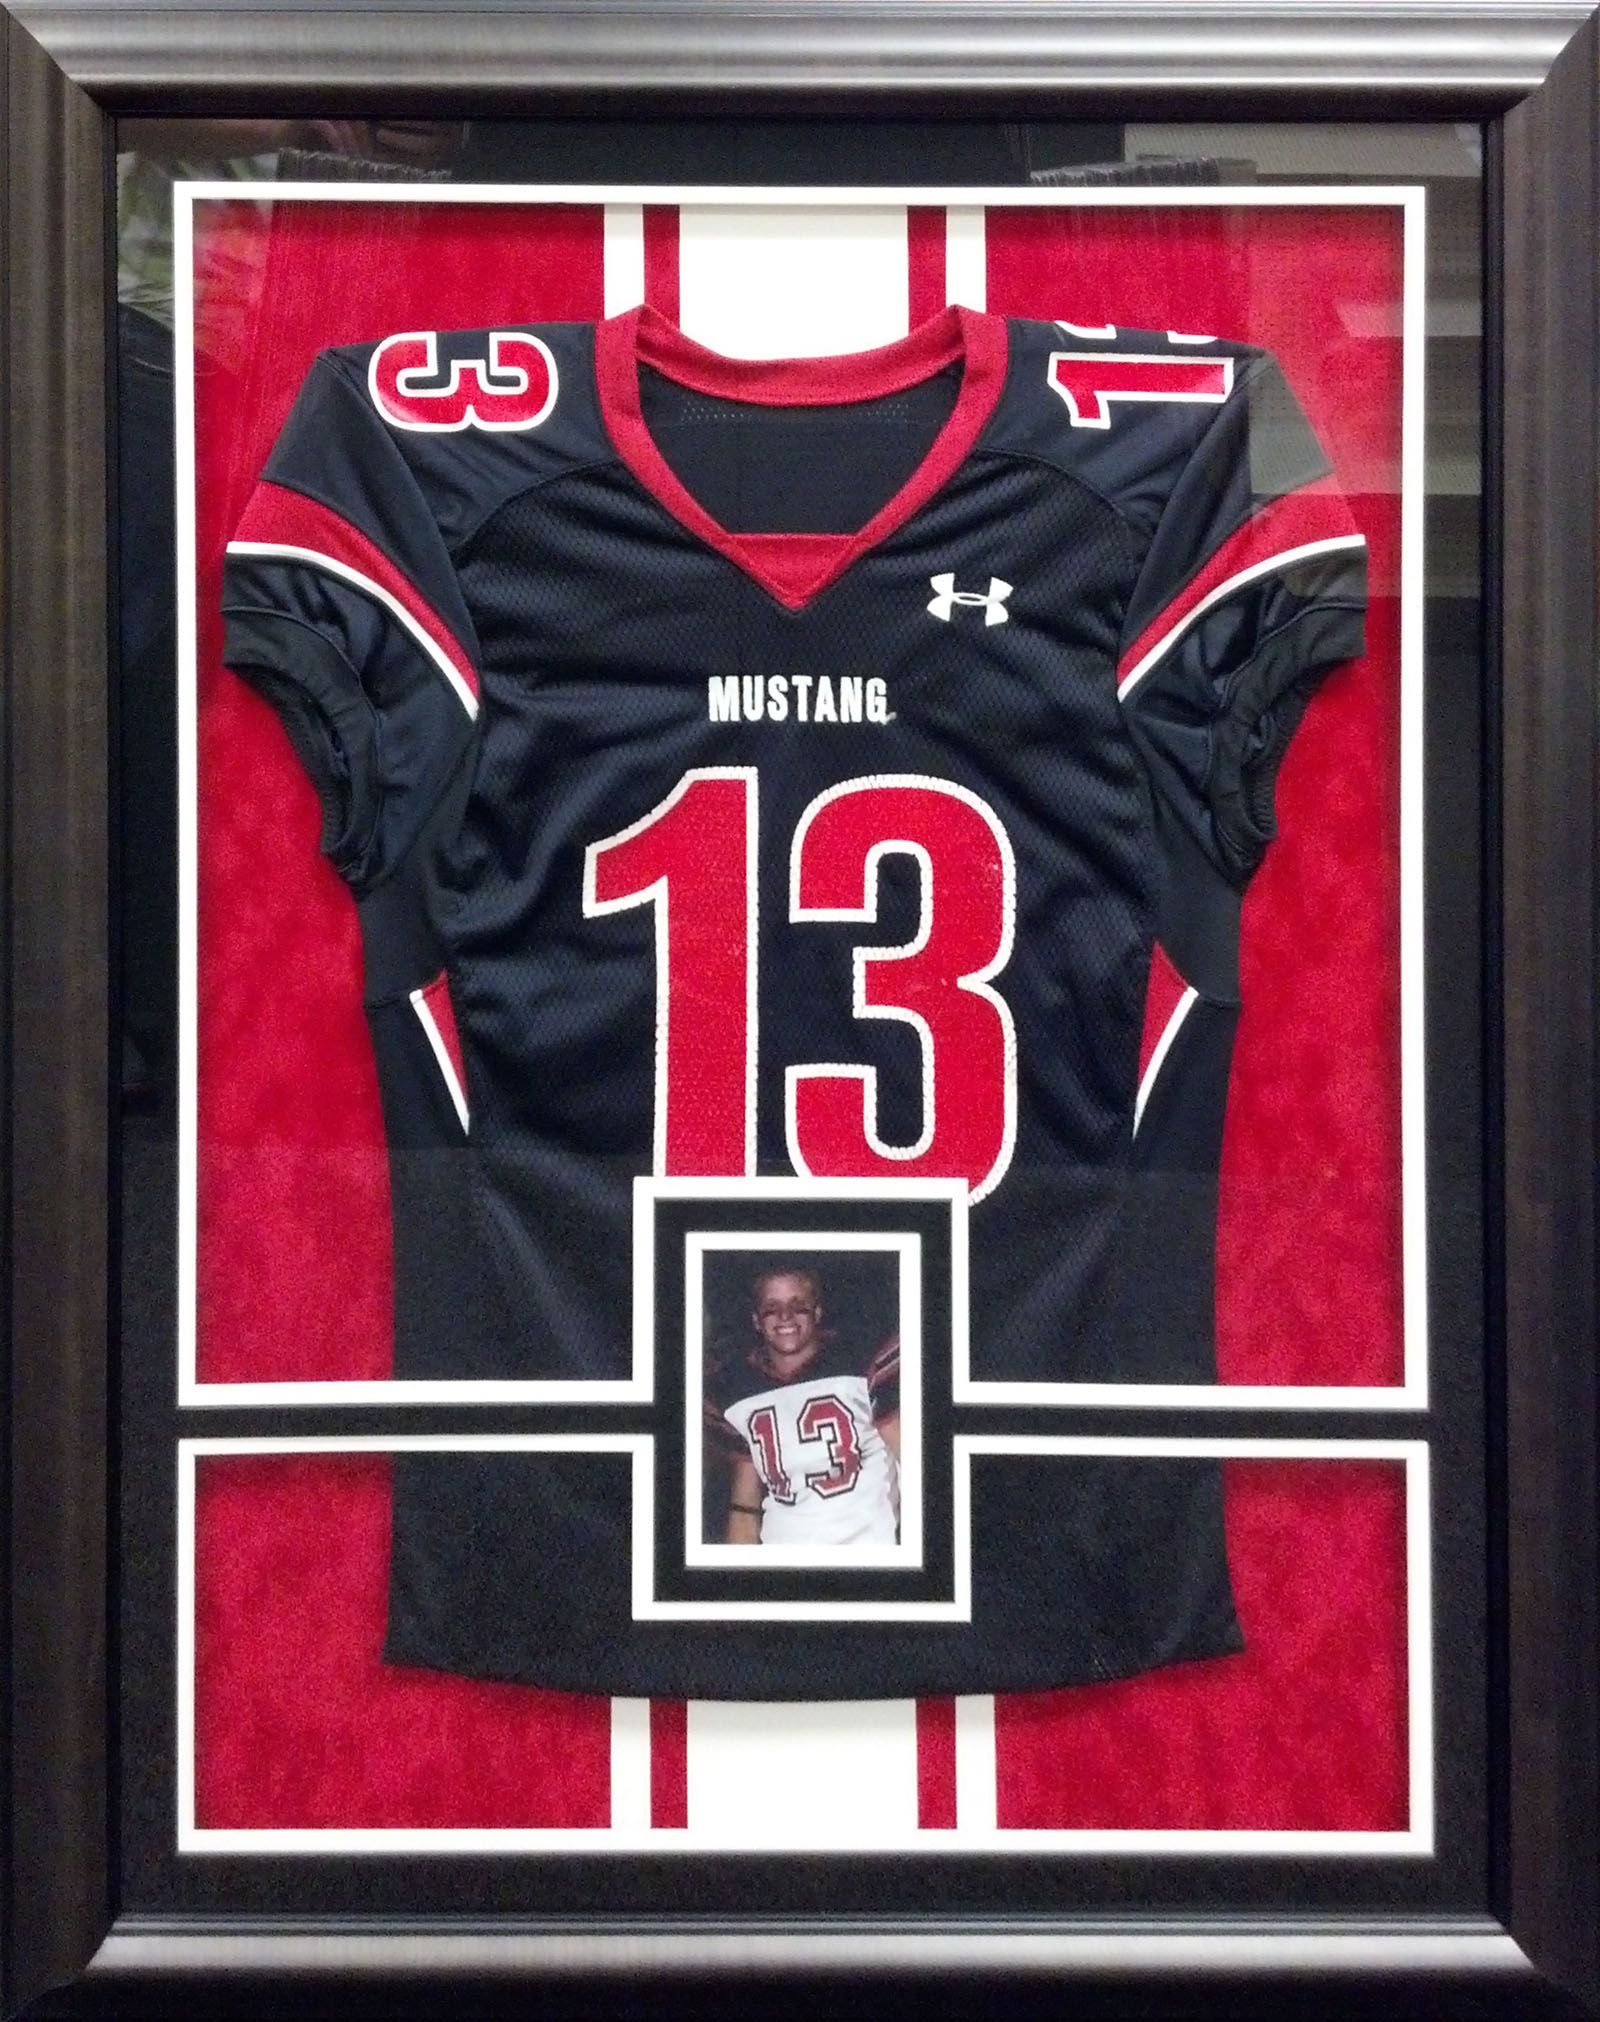 This football jersey is mounted on inlaid mats and is completely our custom framing departments can mount jerseys and other sports memorabilia with industry approved methods solutioingenieria Images